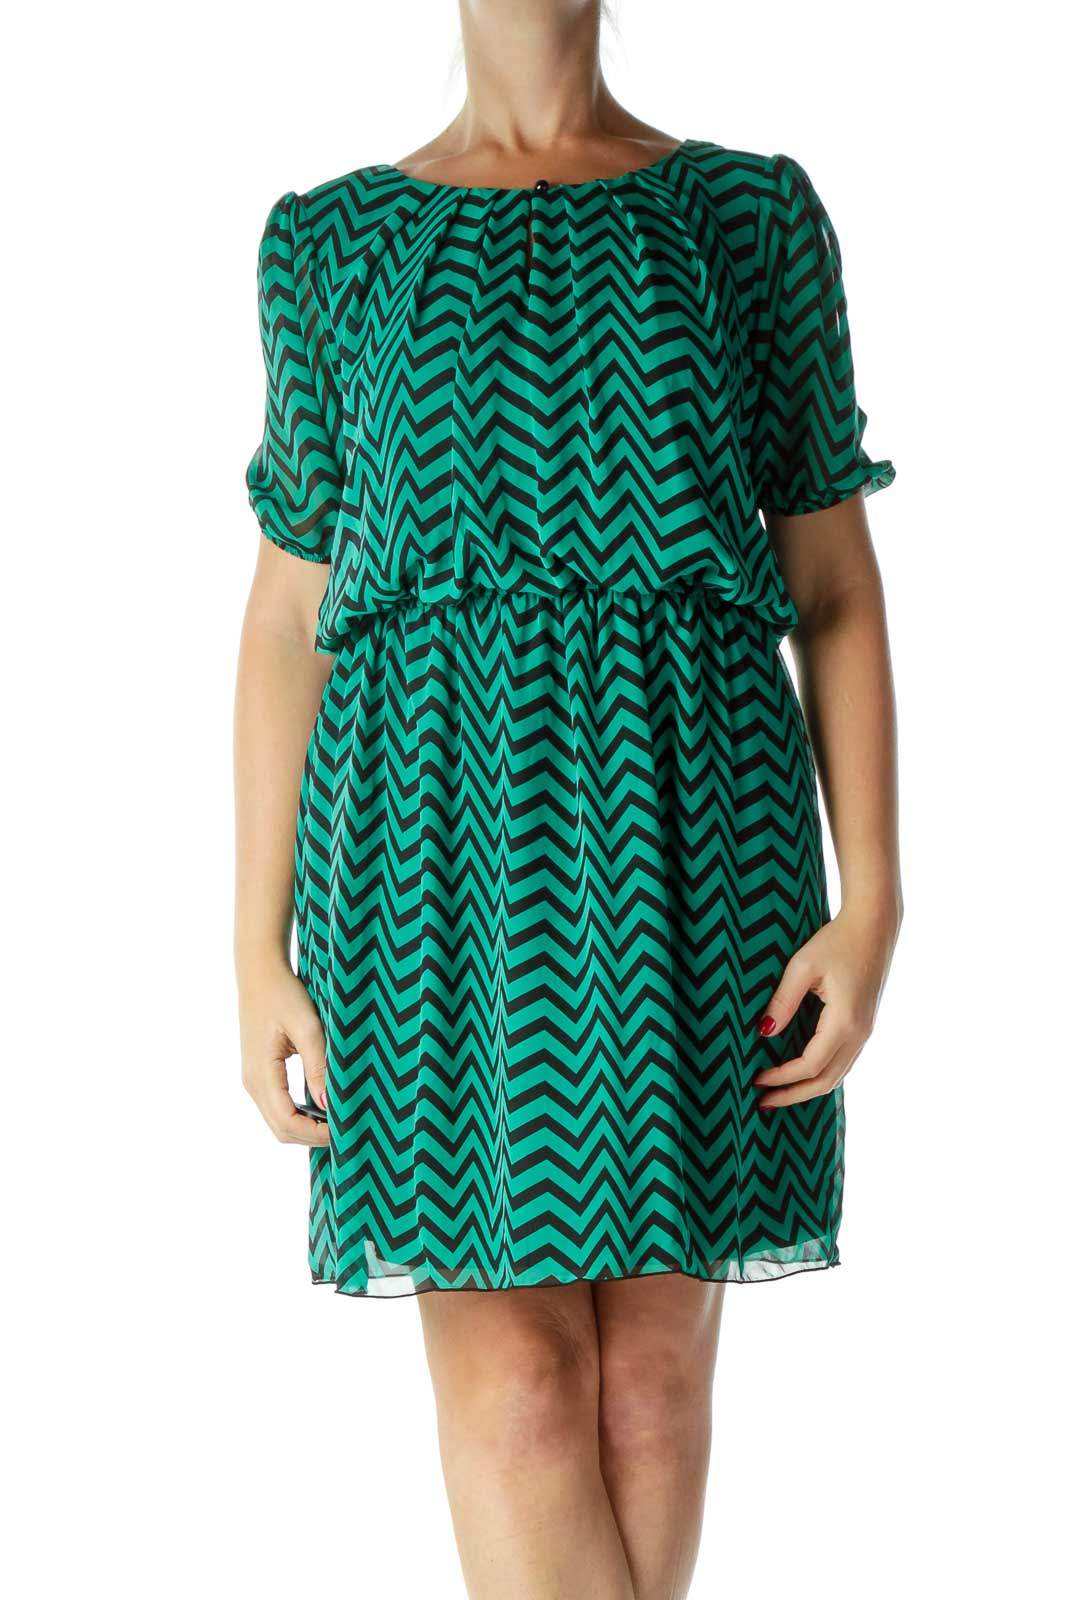 Green Black Chevron Work Dress Front